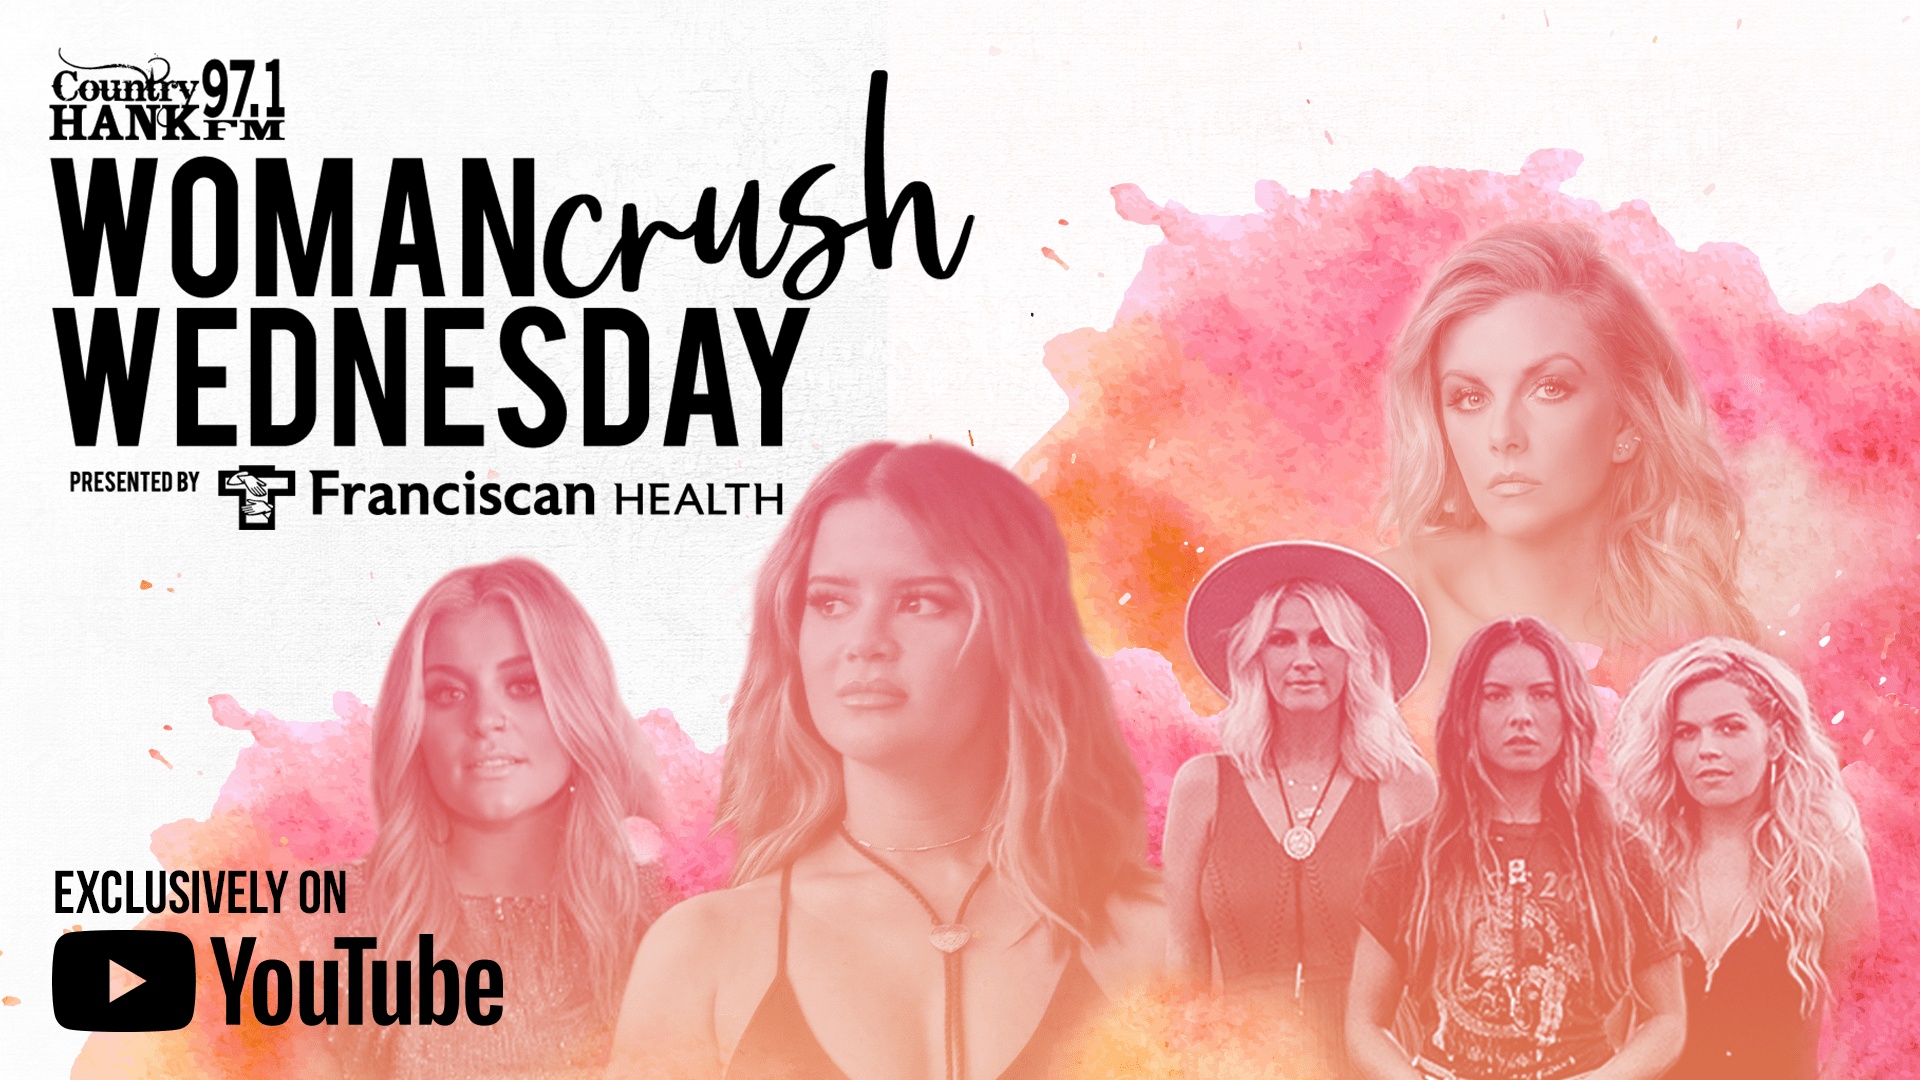 Woman Crush Wednesday Poster with headshots of artists and YouTube logo